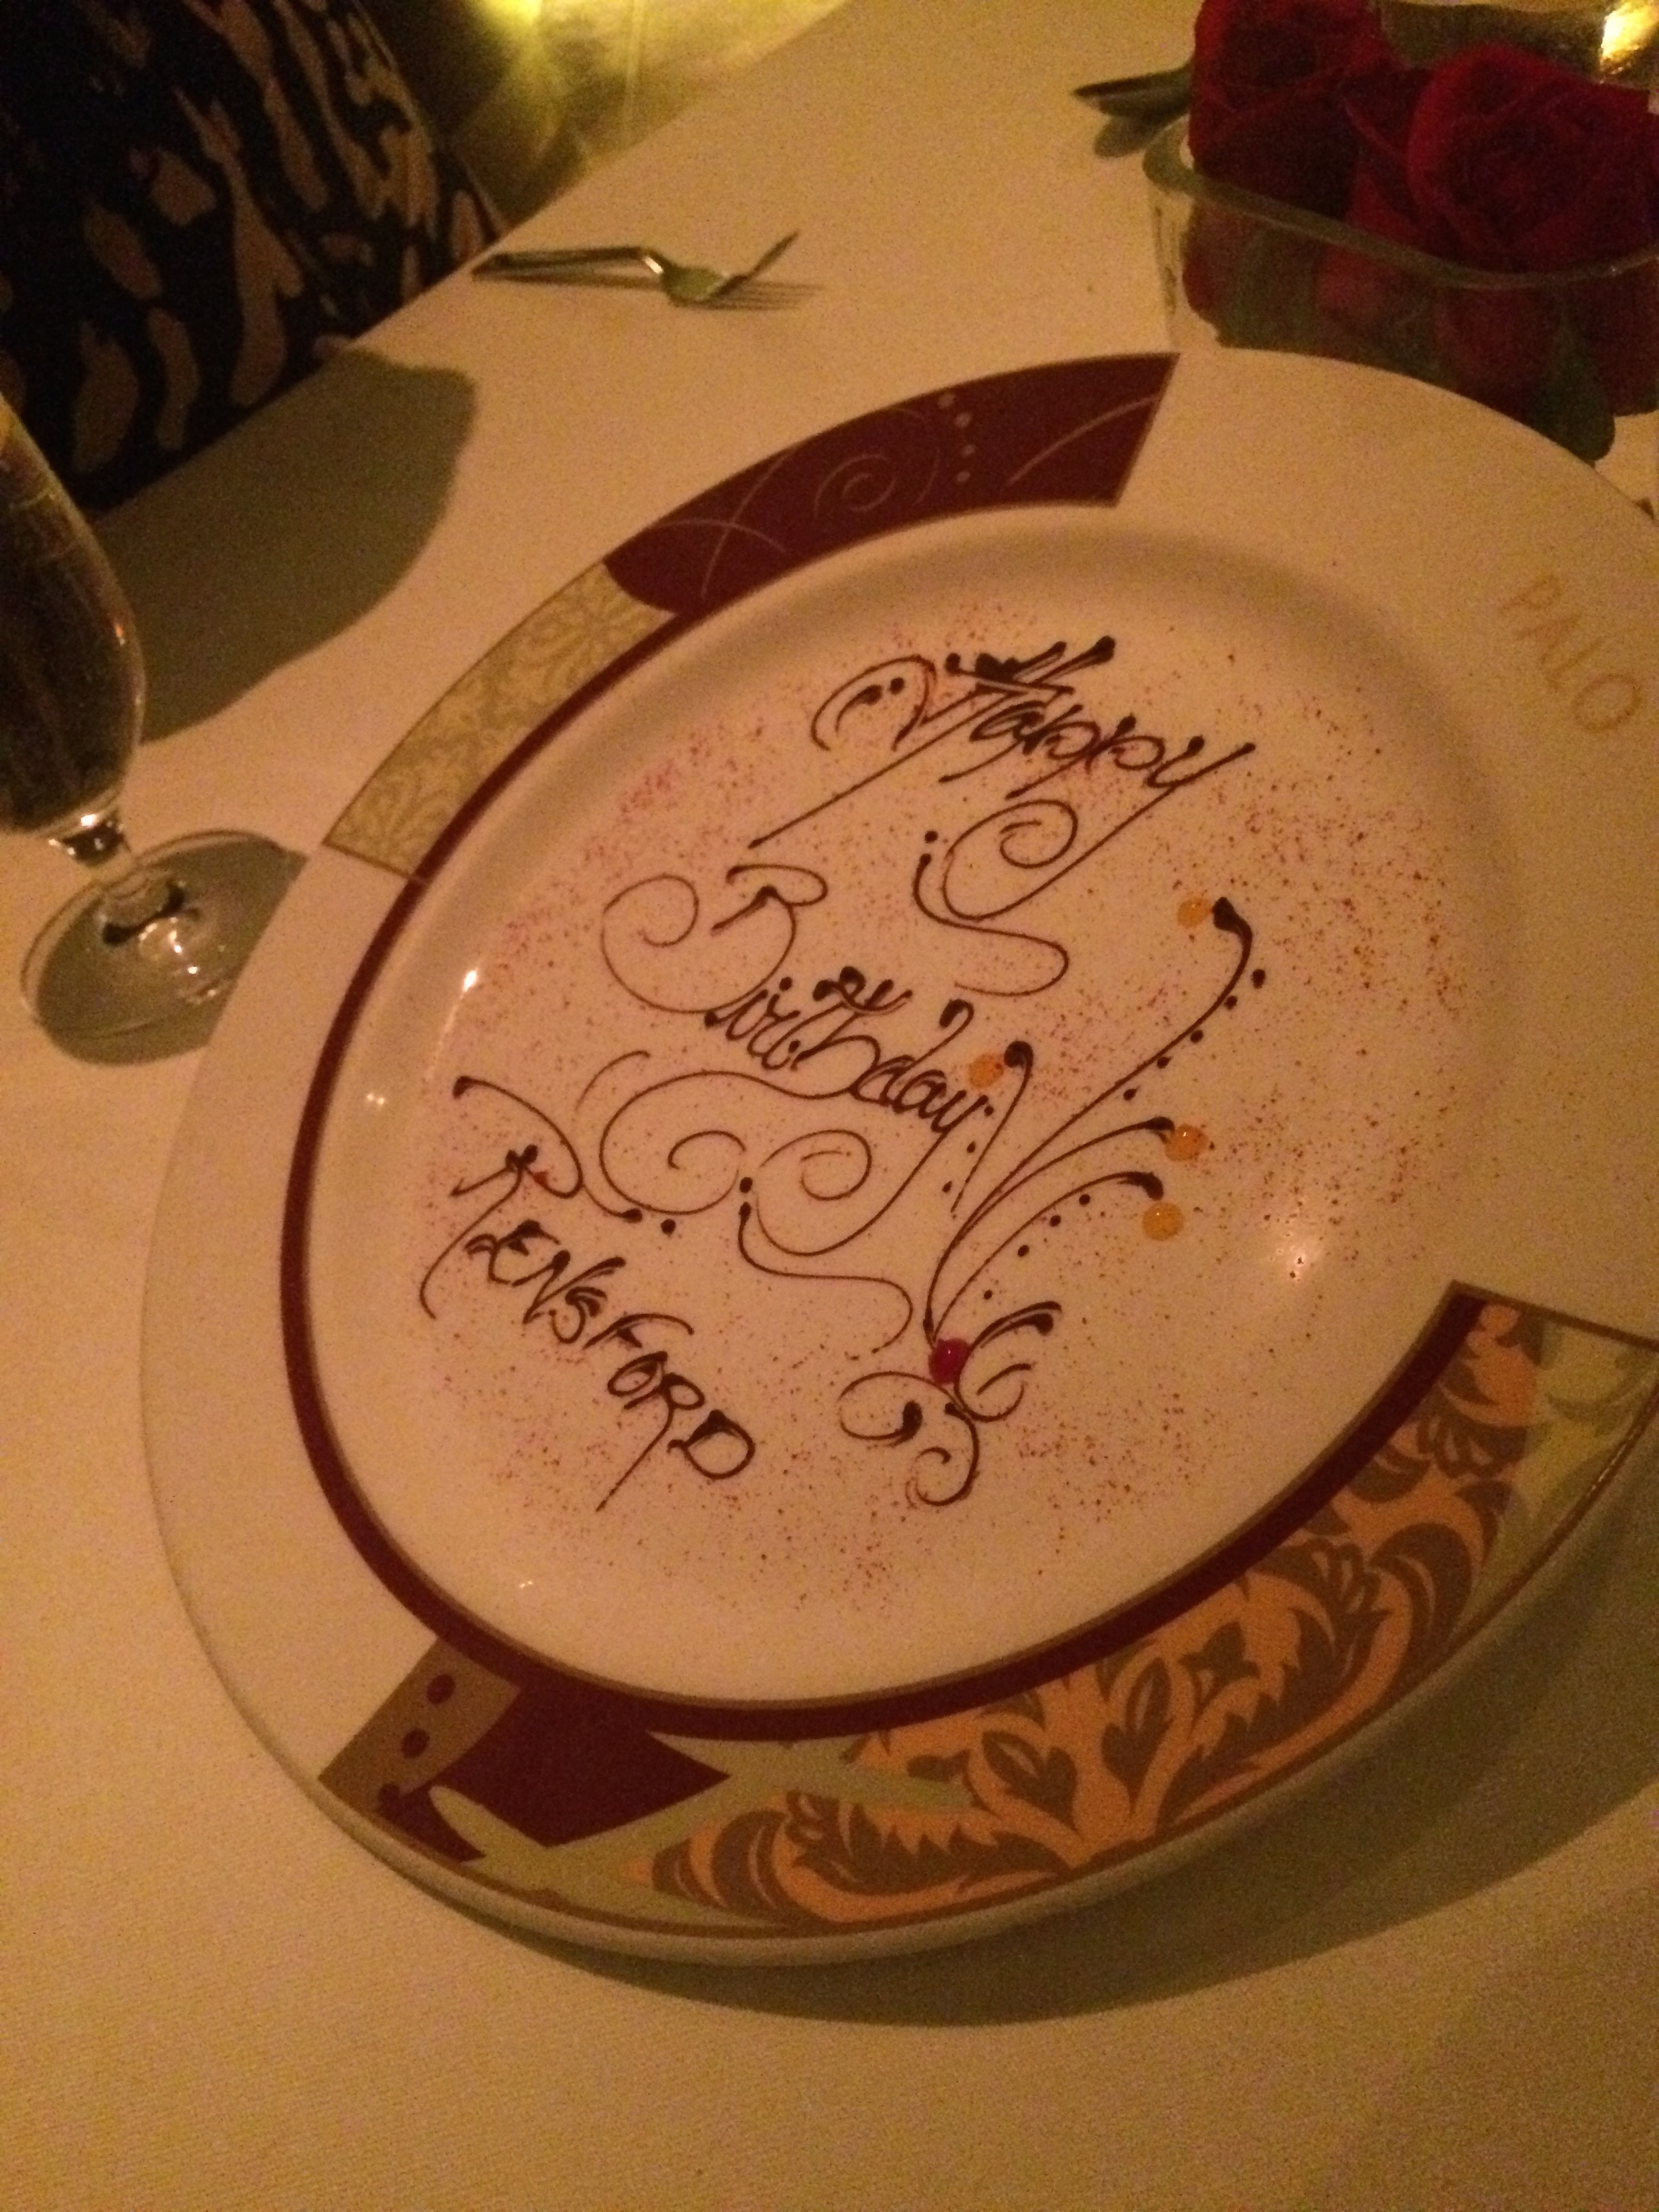 Disney details: Our server overheard our toasts to my father in law and prepared this lovely plate at dessert for him...